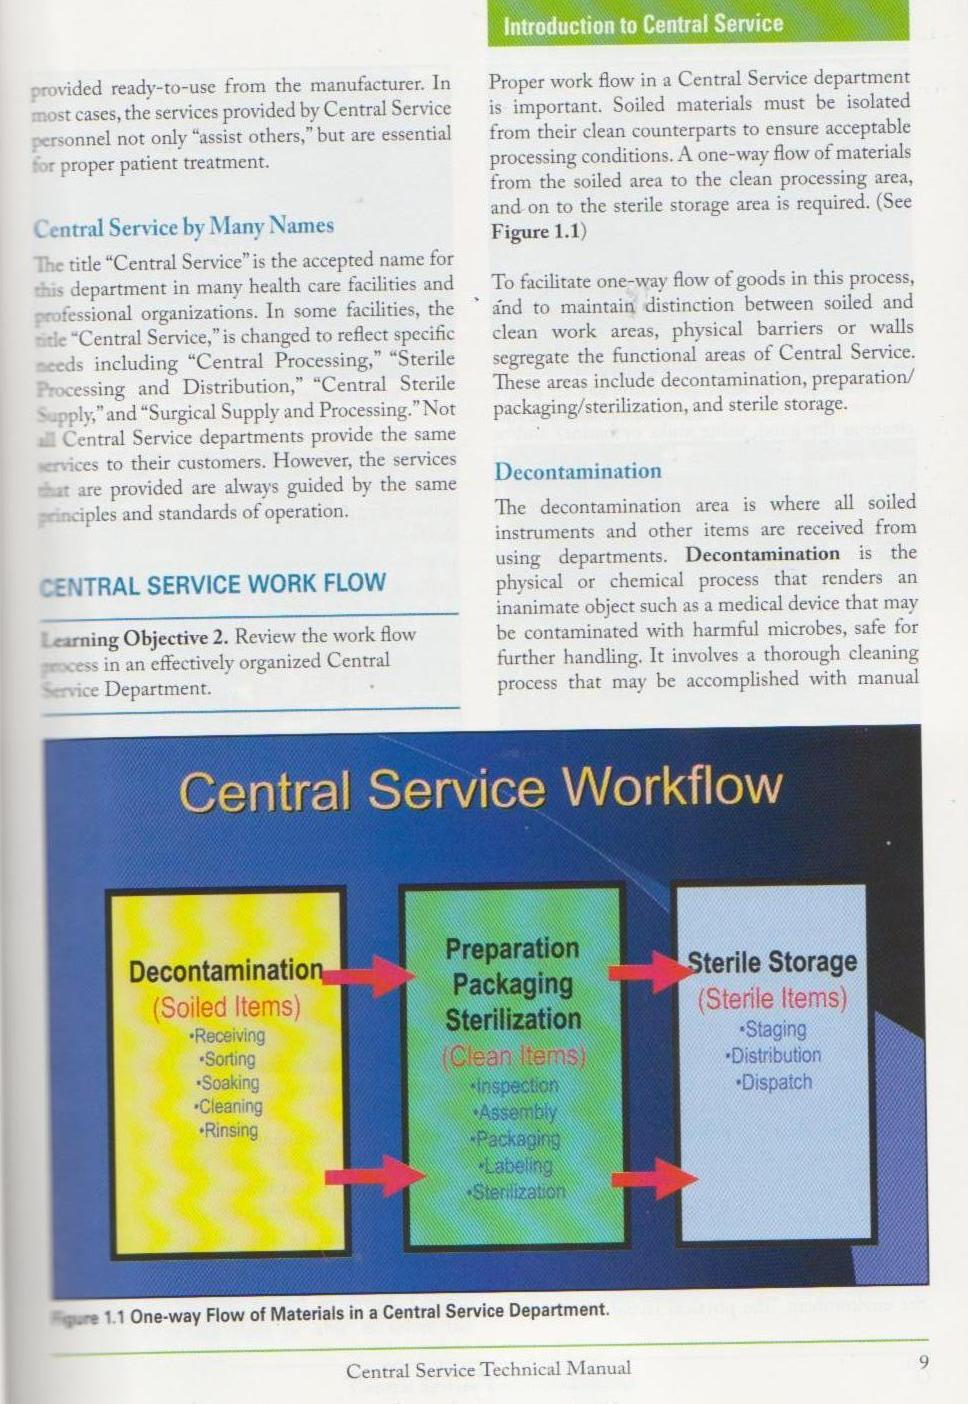 Basic job knowledge and skills. Basic job responsibilities. Basic central  service concerns